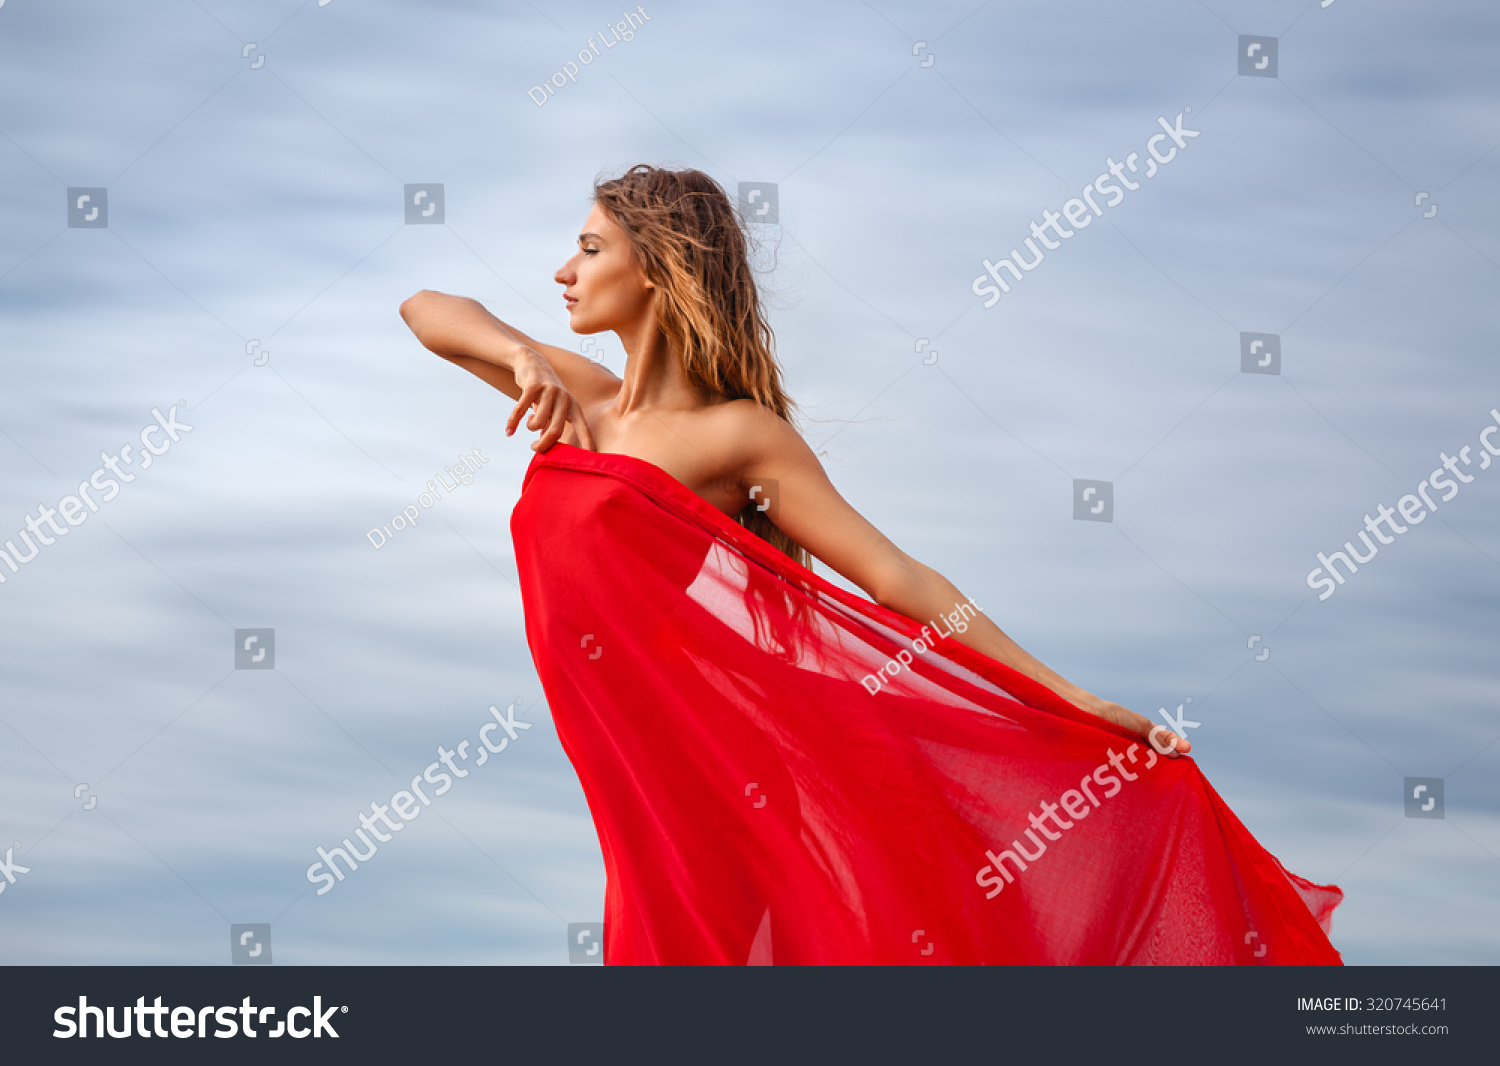 Beautiful Young Woman Red Fabric Posing Stock Photo Edit Now L 730 Cute Sexy Cloudy Water Lingerie Dress With Against Sky Background